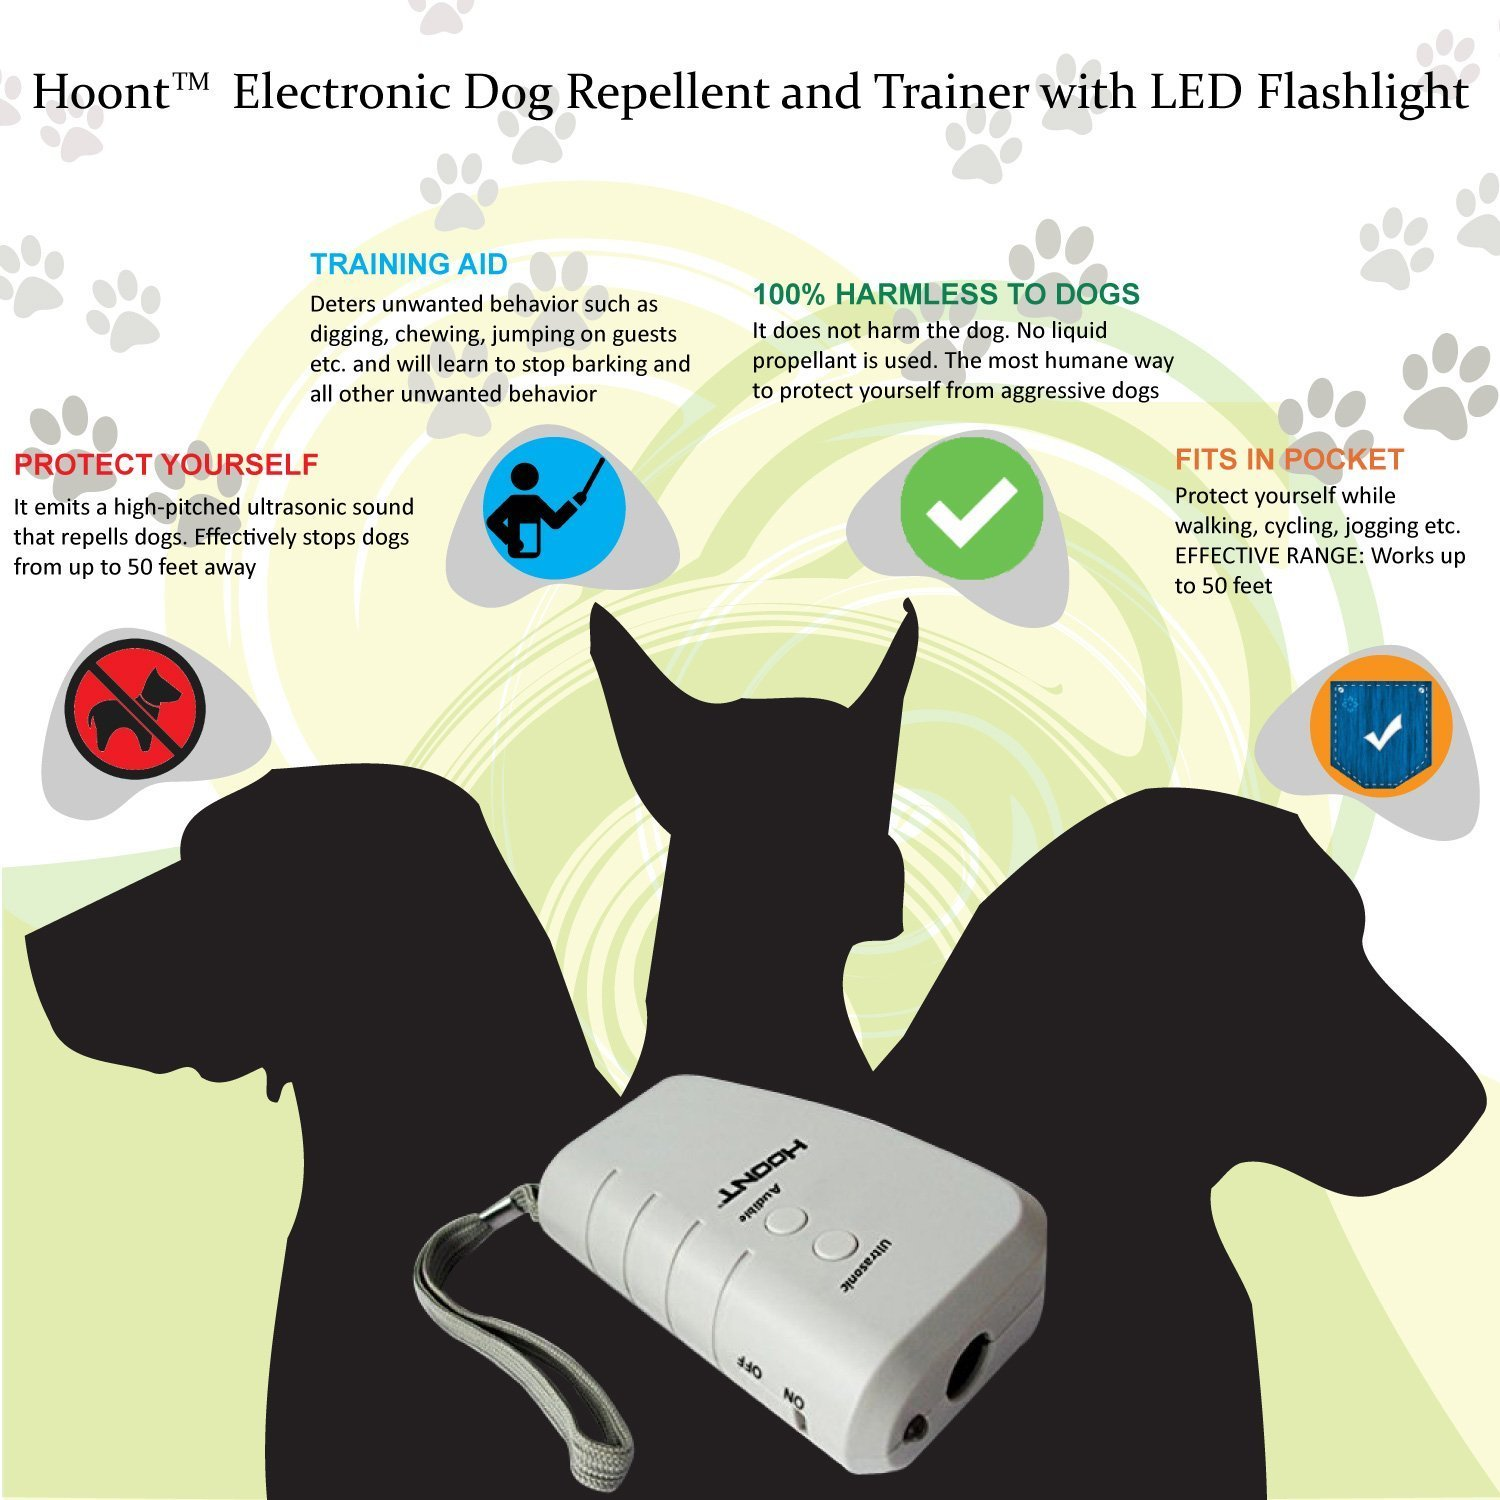 Instecho Handheld Dog Repellent Ultrasonic Infrared Deterrent Electronic Circuit 2 Bark Stopper Good Behavior Training Drfasting